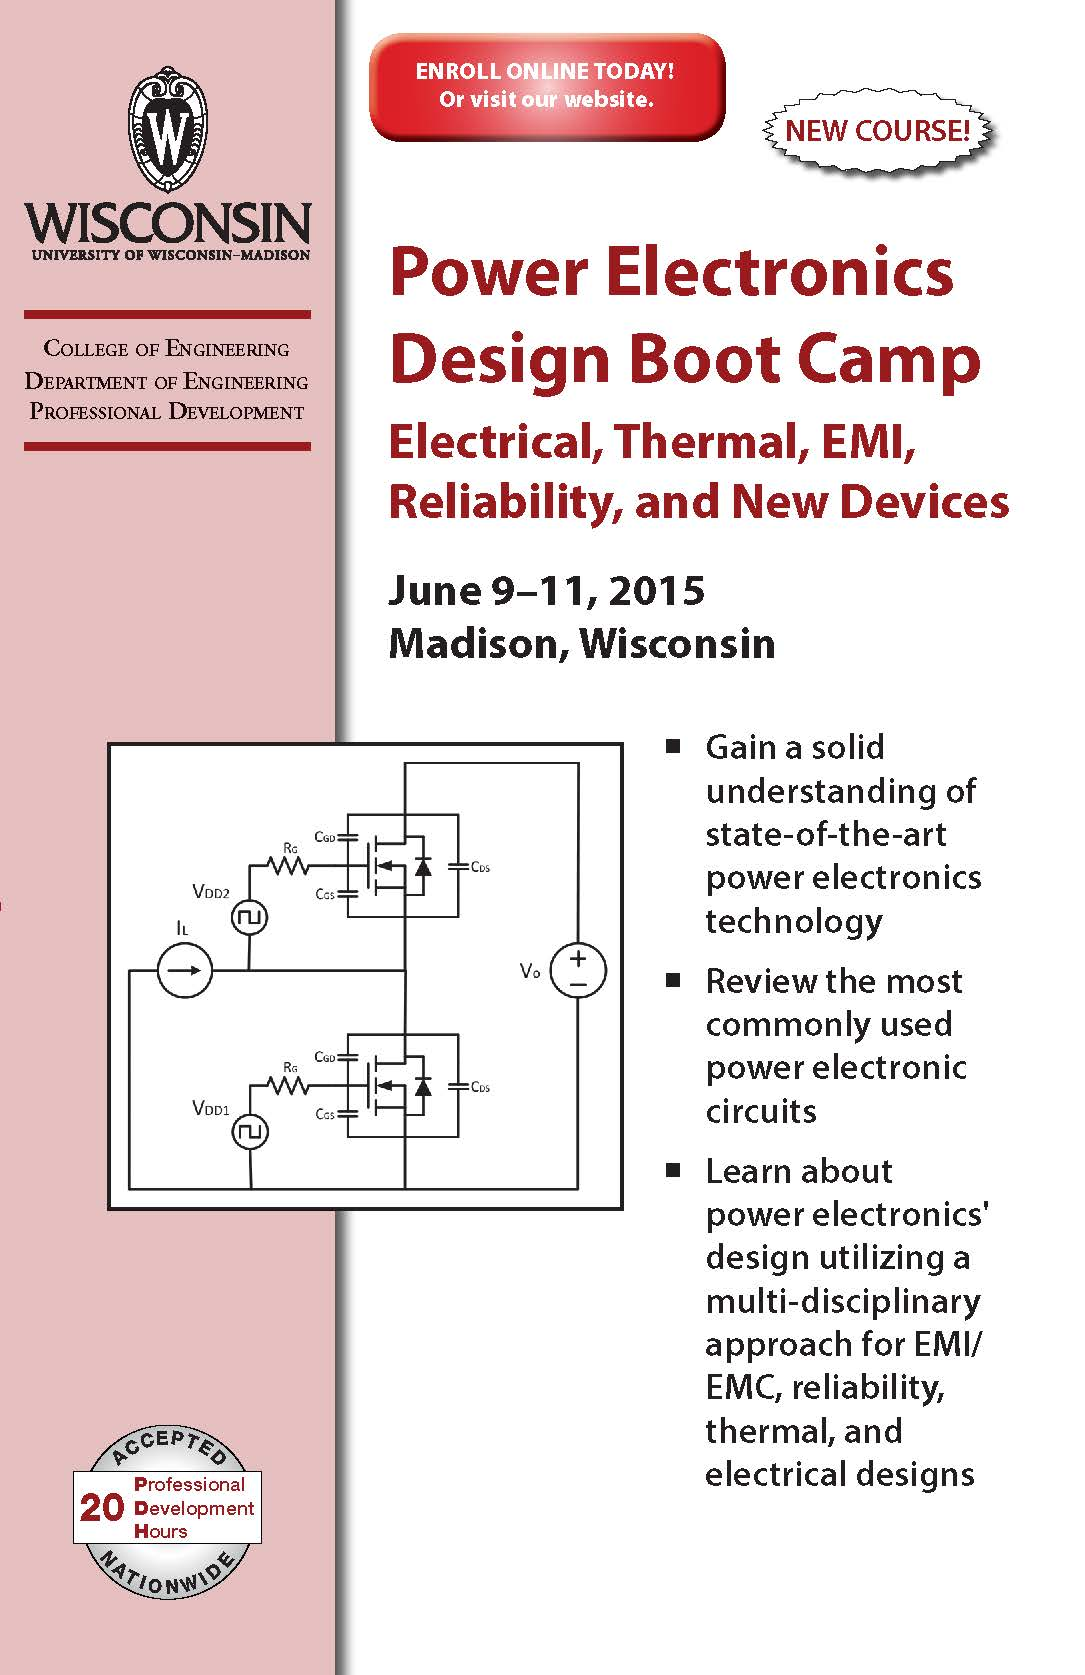 Power Electronics Design Bootcamp